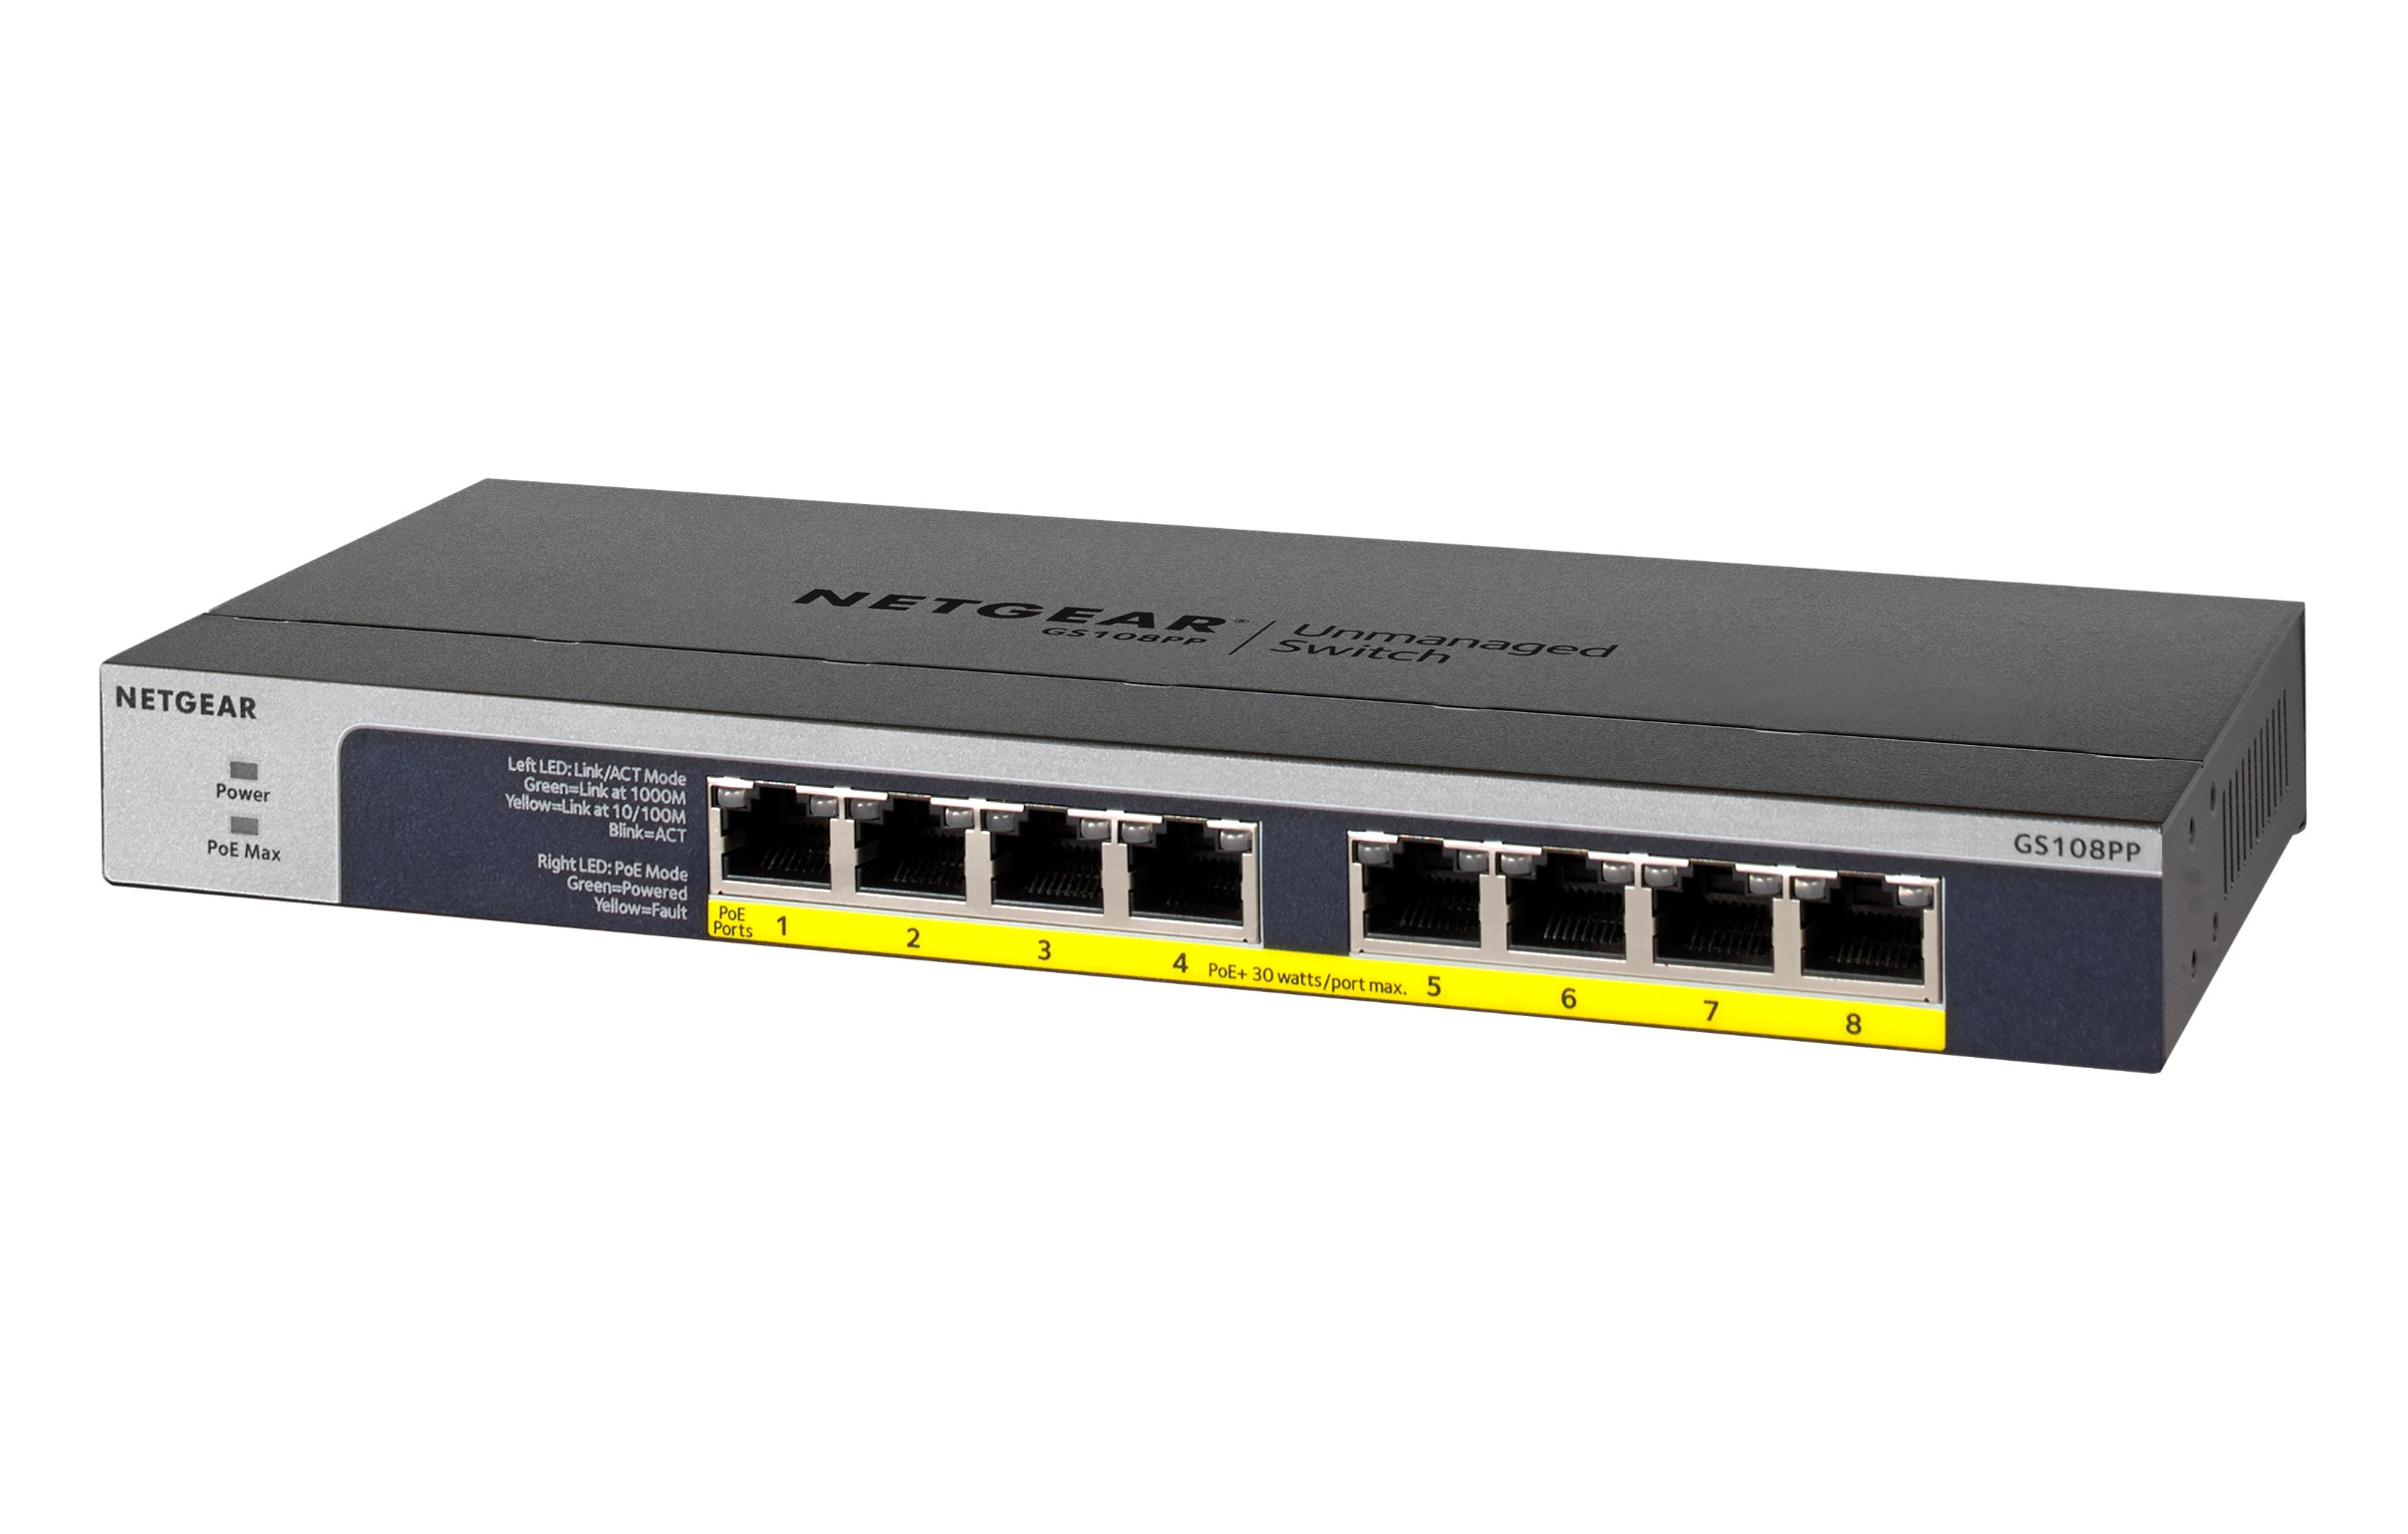 ItVoice | Online IT Magazine India » NETGEAR Rolls Out GS108PP ...